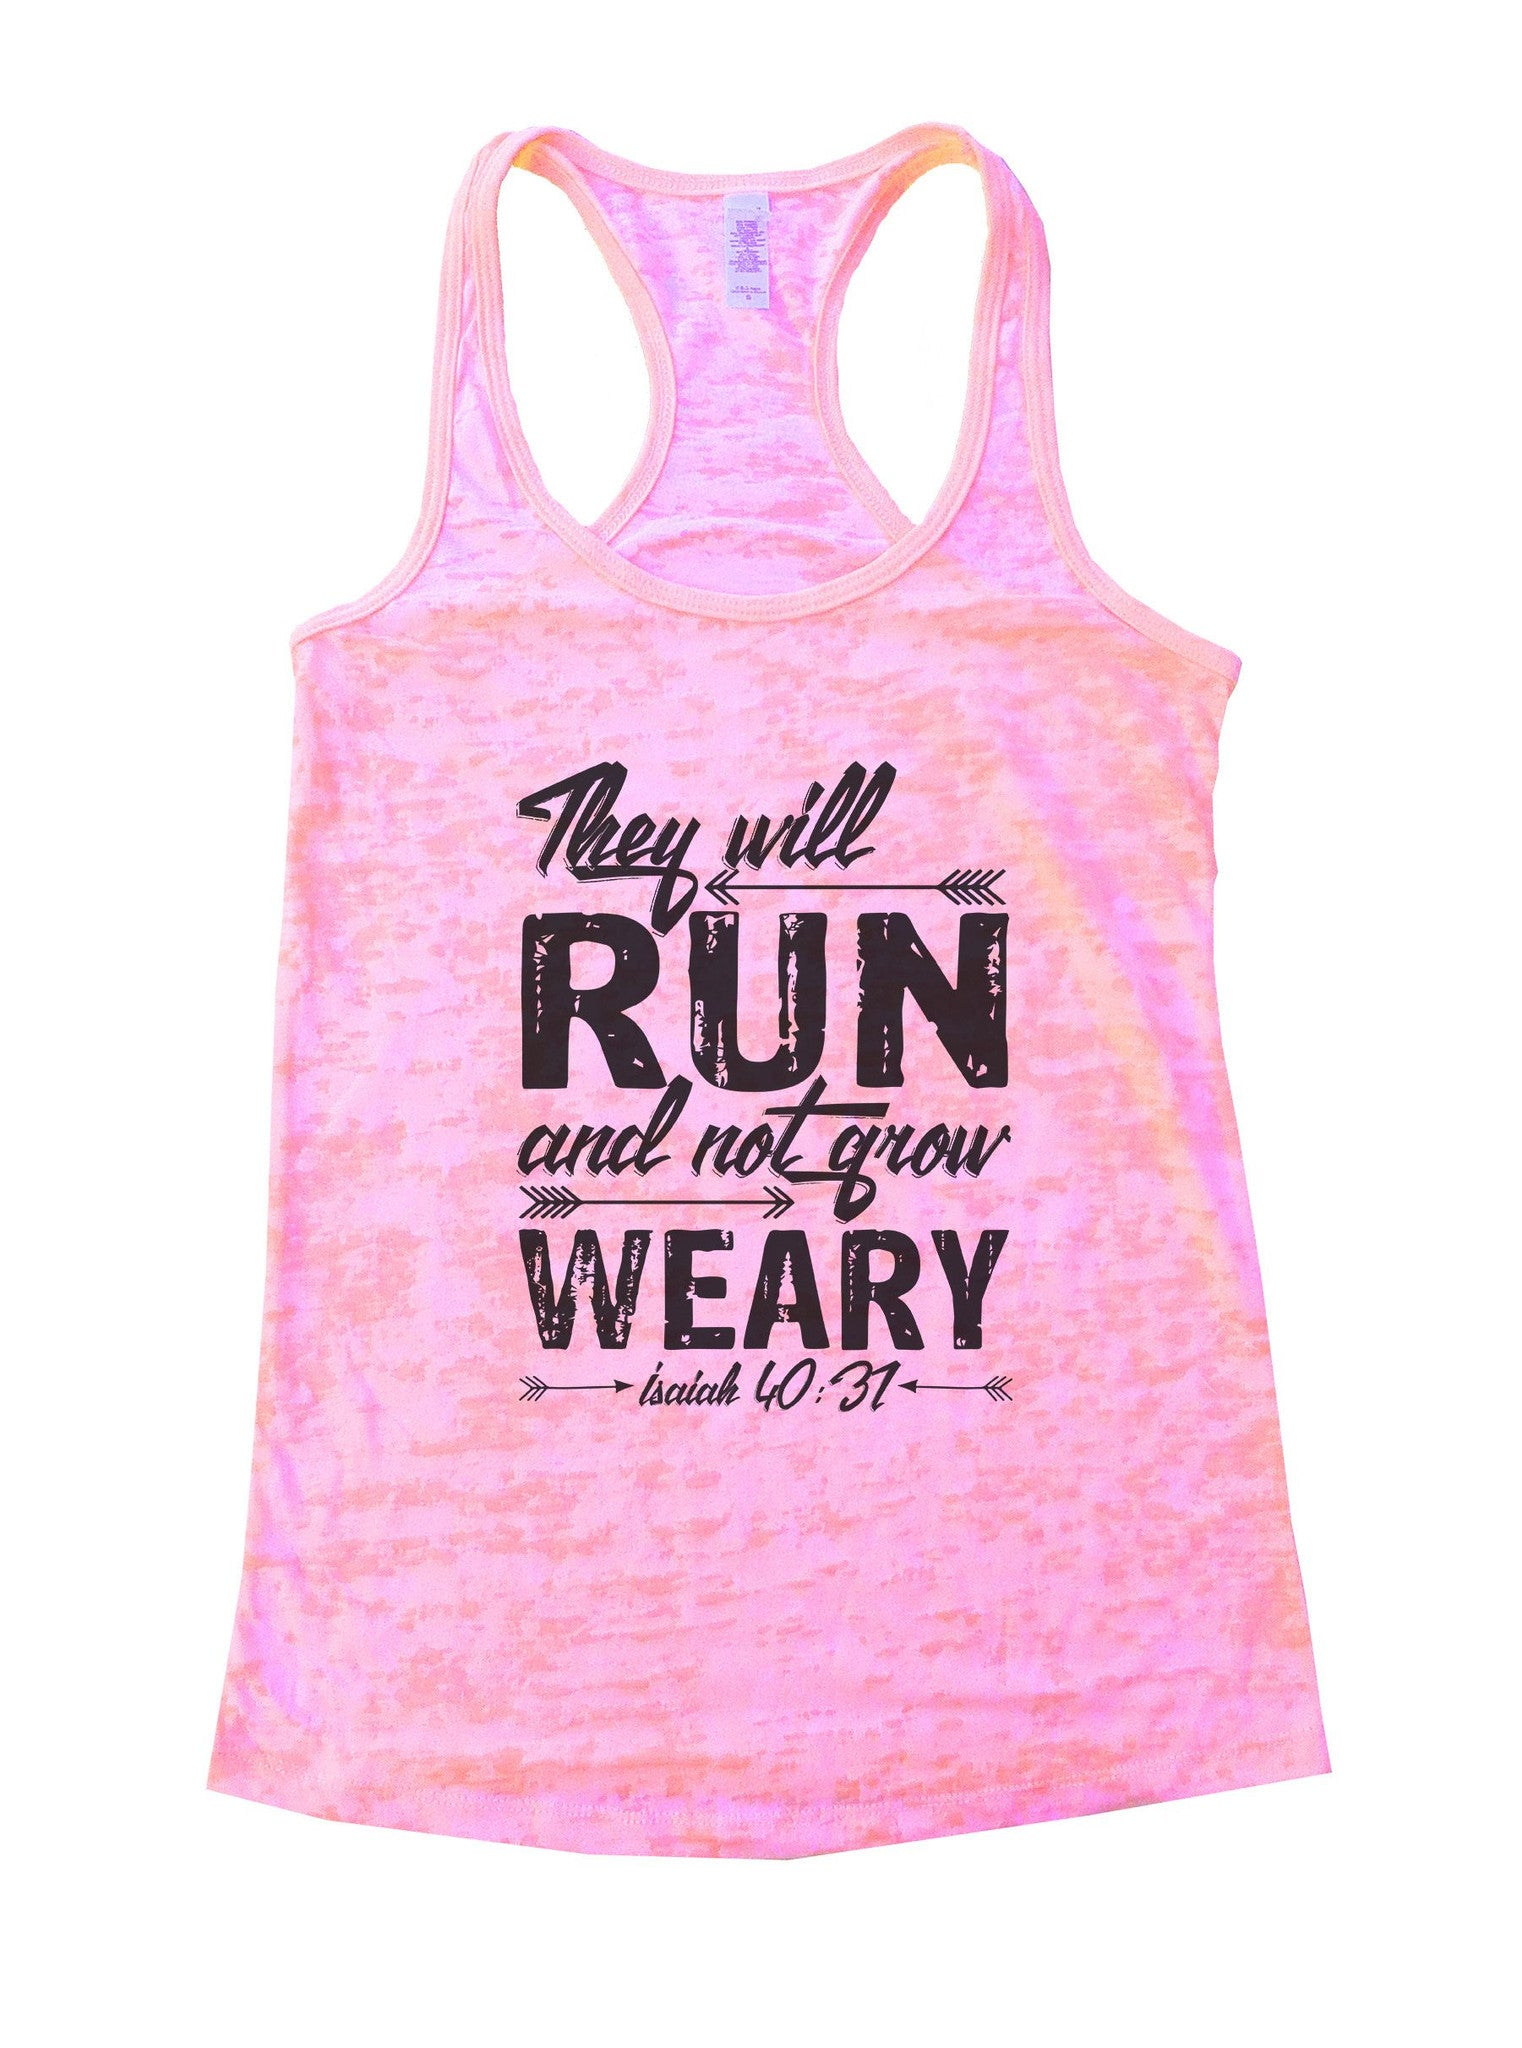 They Will Run And Not Grow Weary Isaiah 40:31 Burnout Tank Top By BurnoutTankTops.com - 1075 - Funny Shirts Tank Tops Burnouts and Triblends  - 2